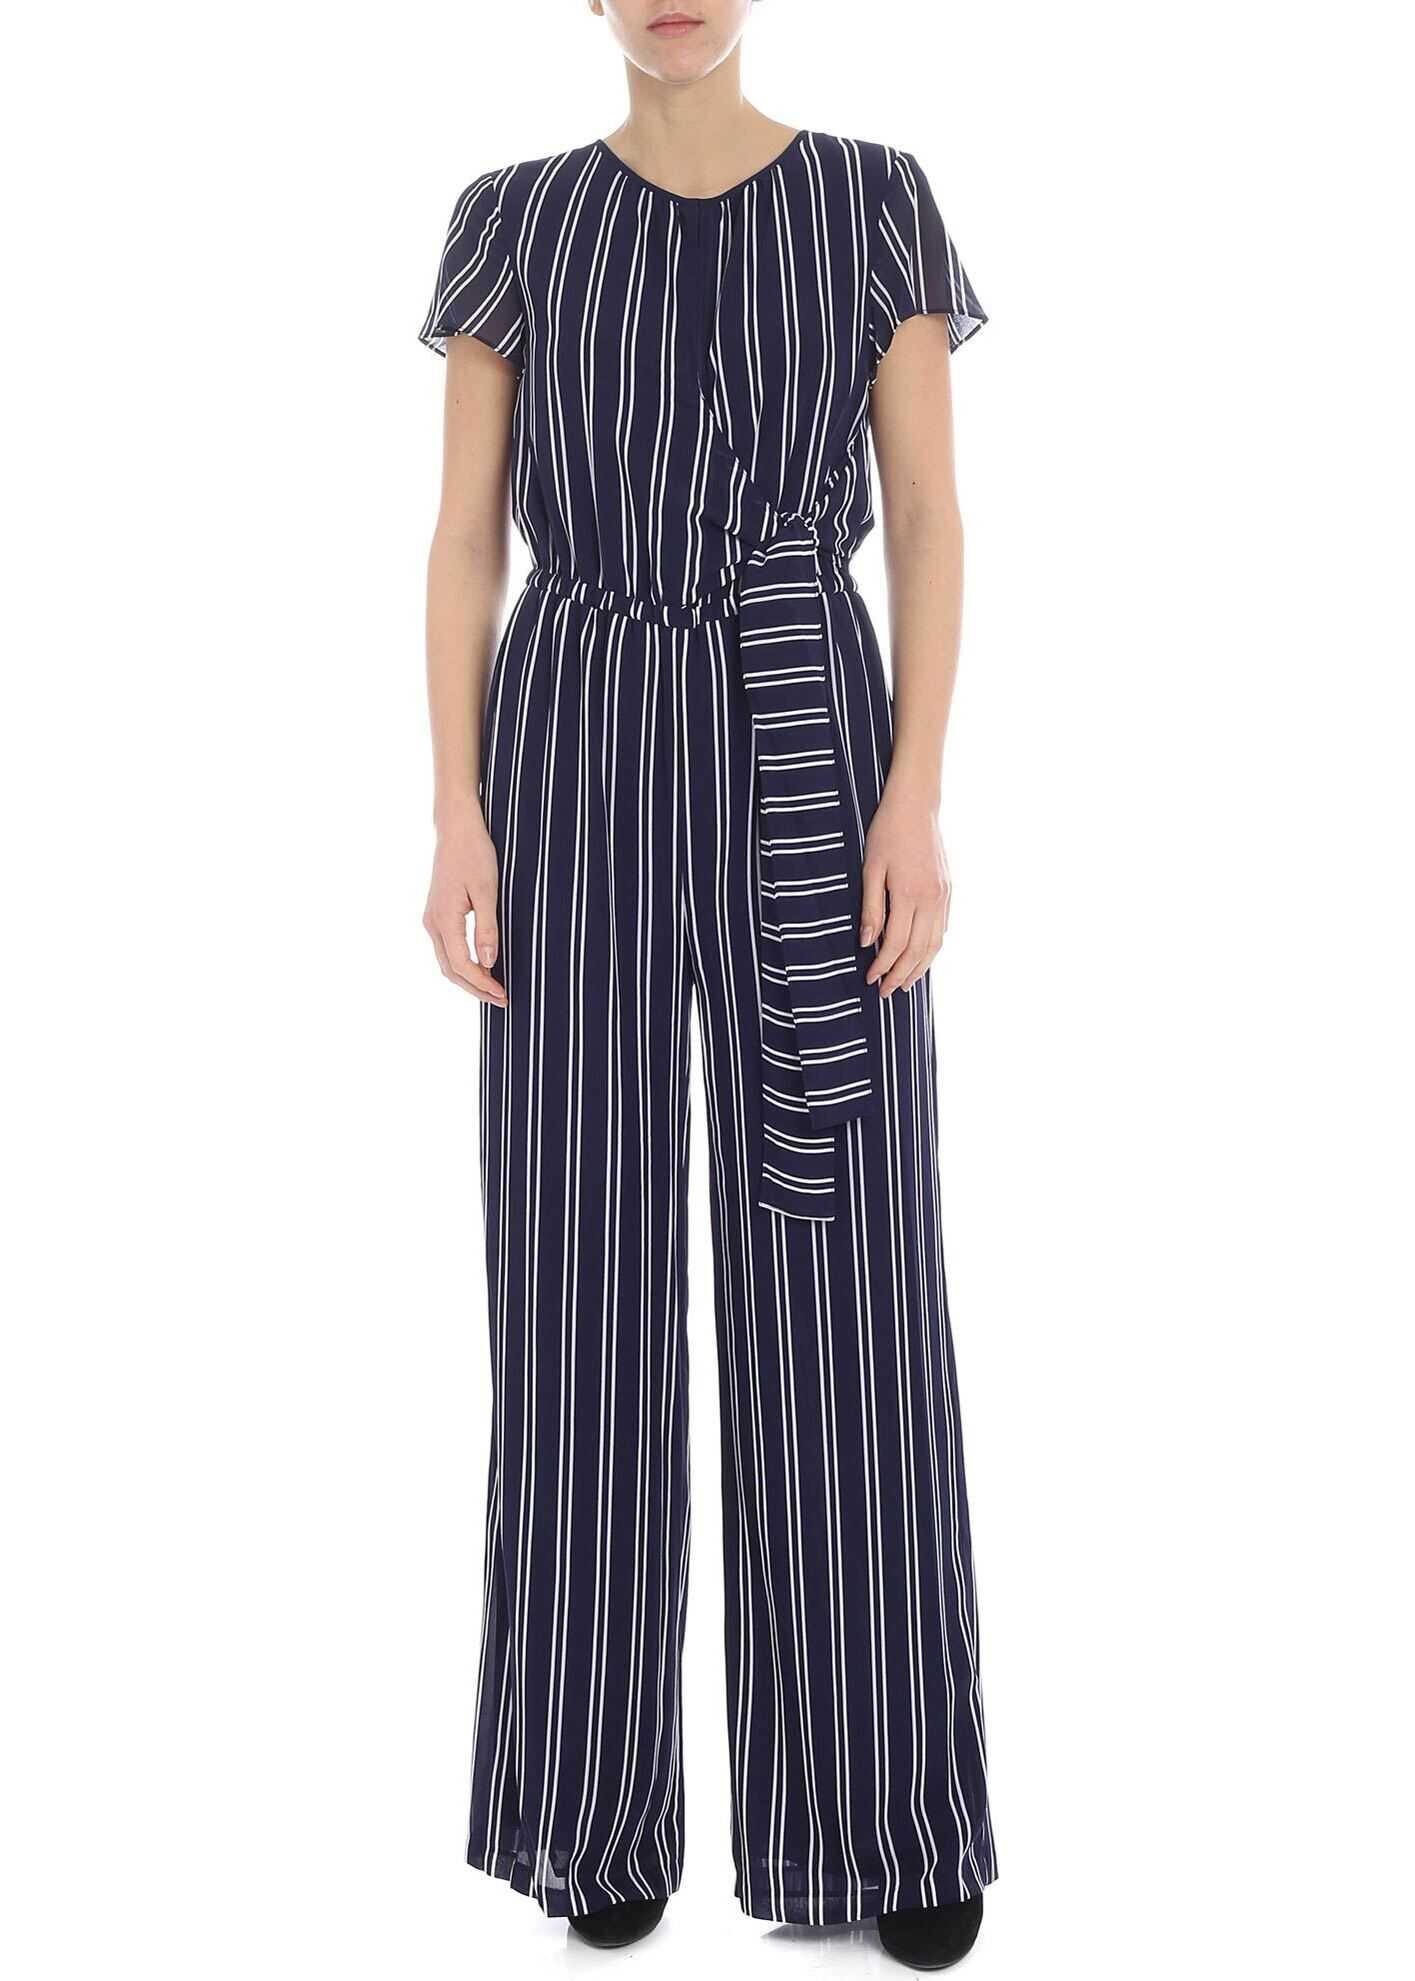 Blue Jumpsuit With White Stripes